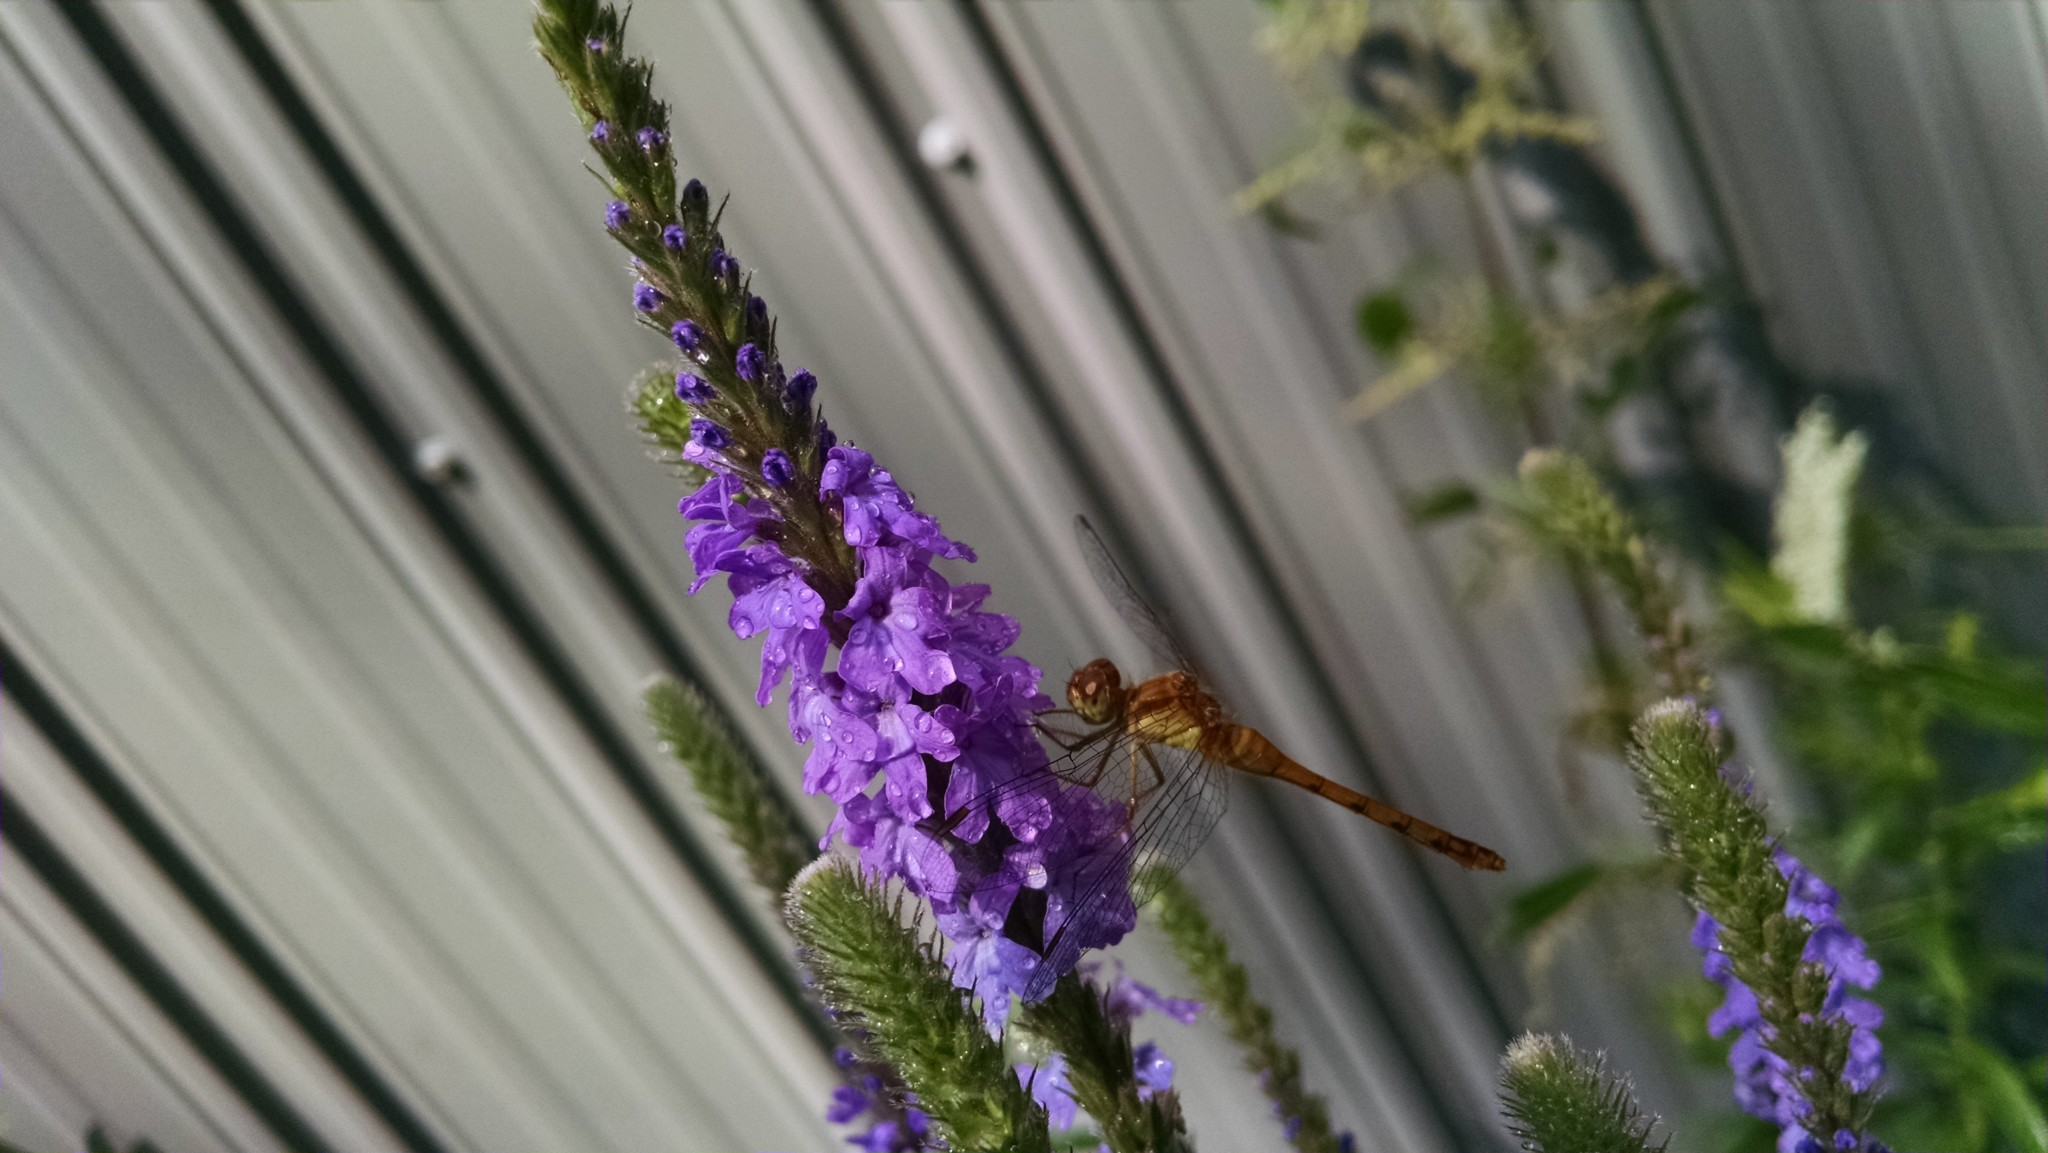 Verbena-stricta-Hoary-Vervain-with-dragonfly-2